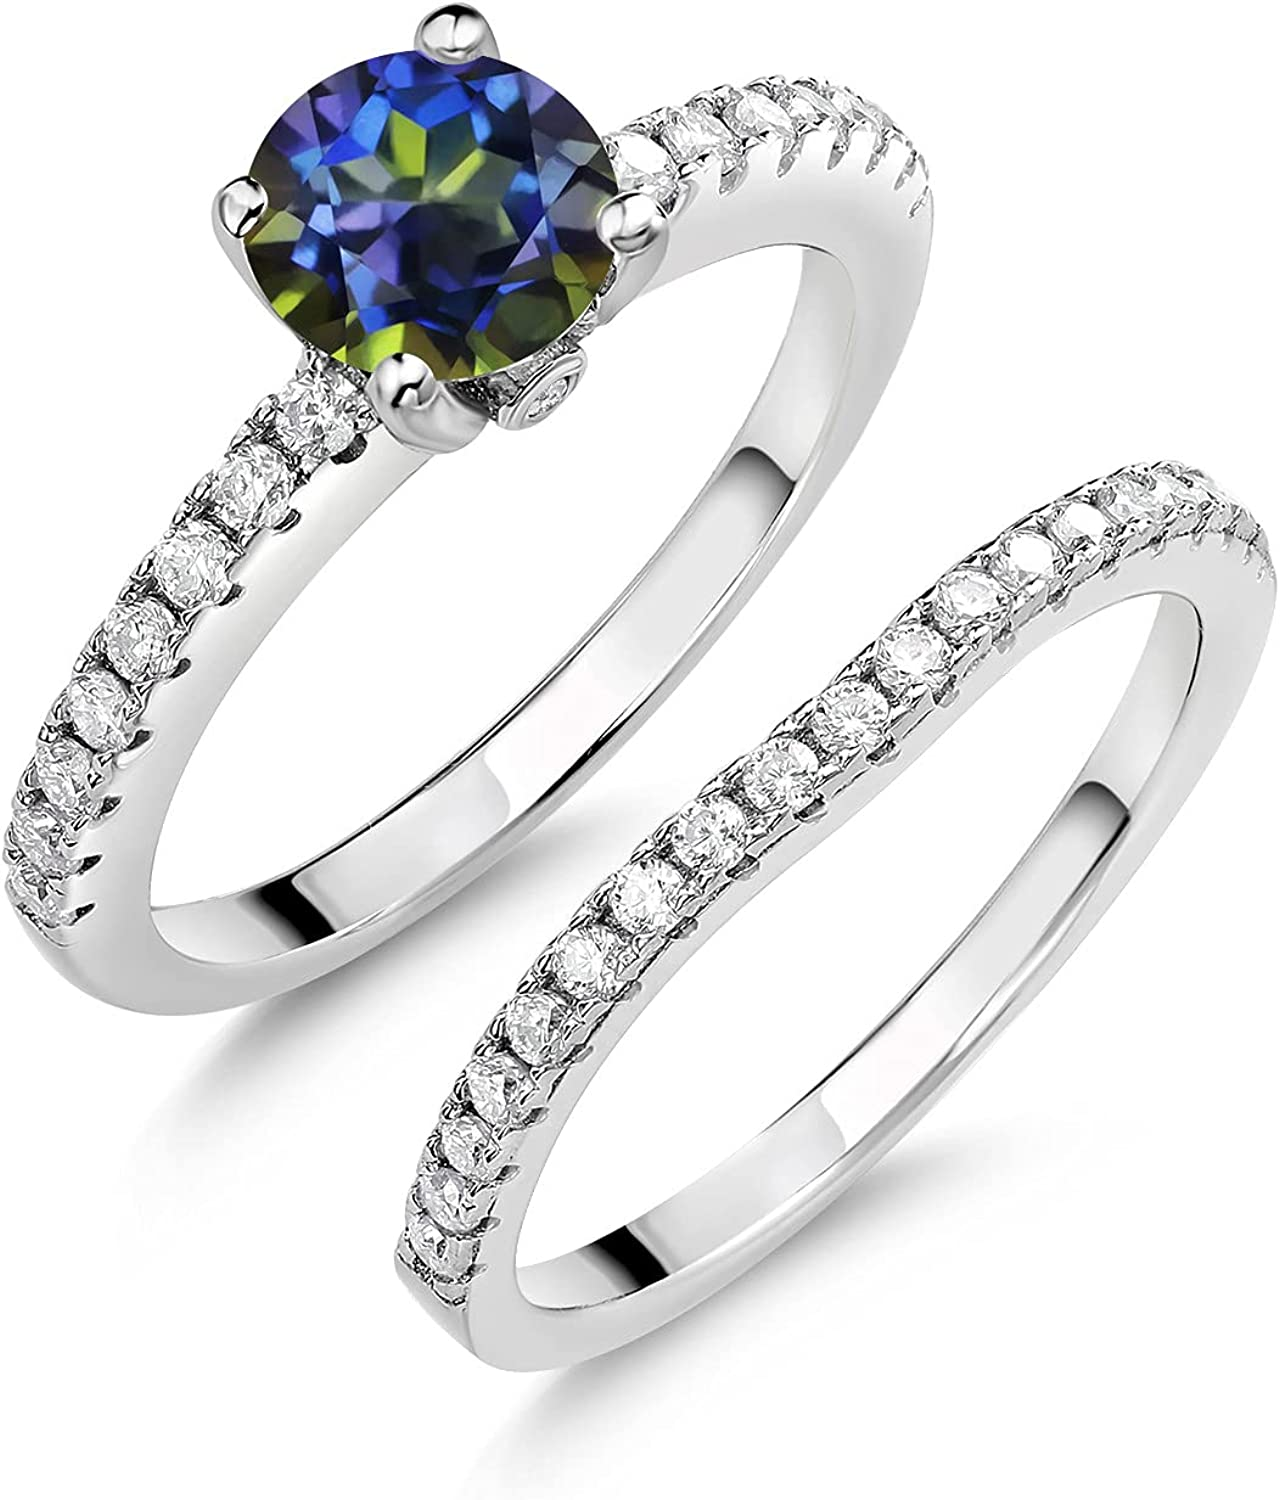 925 Sterling Silver Women Wedding Free shipping New Engagement Bridal Ring Band Se Branded goods